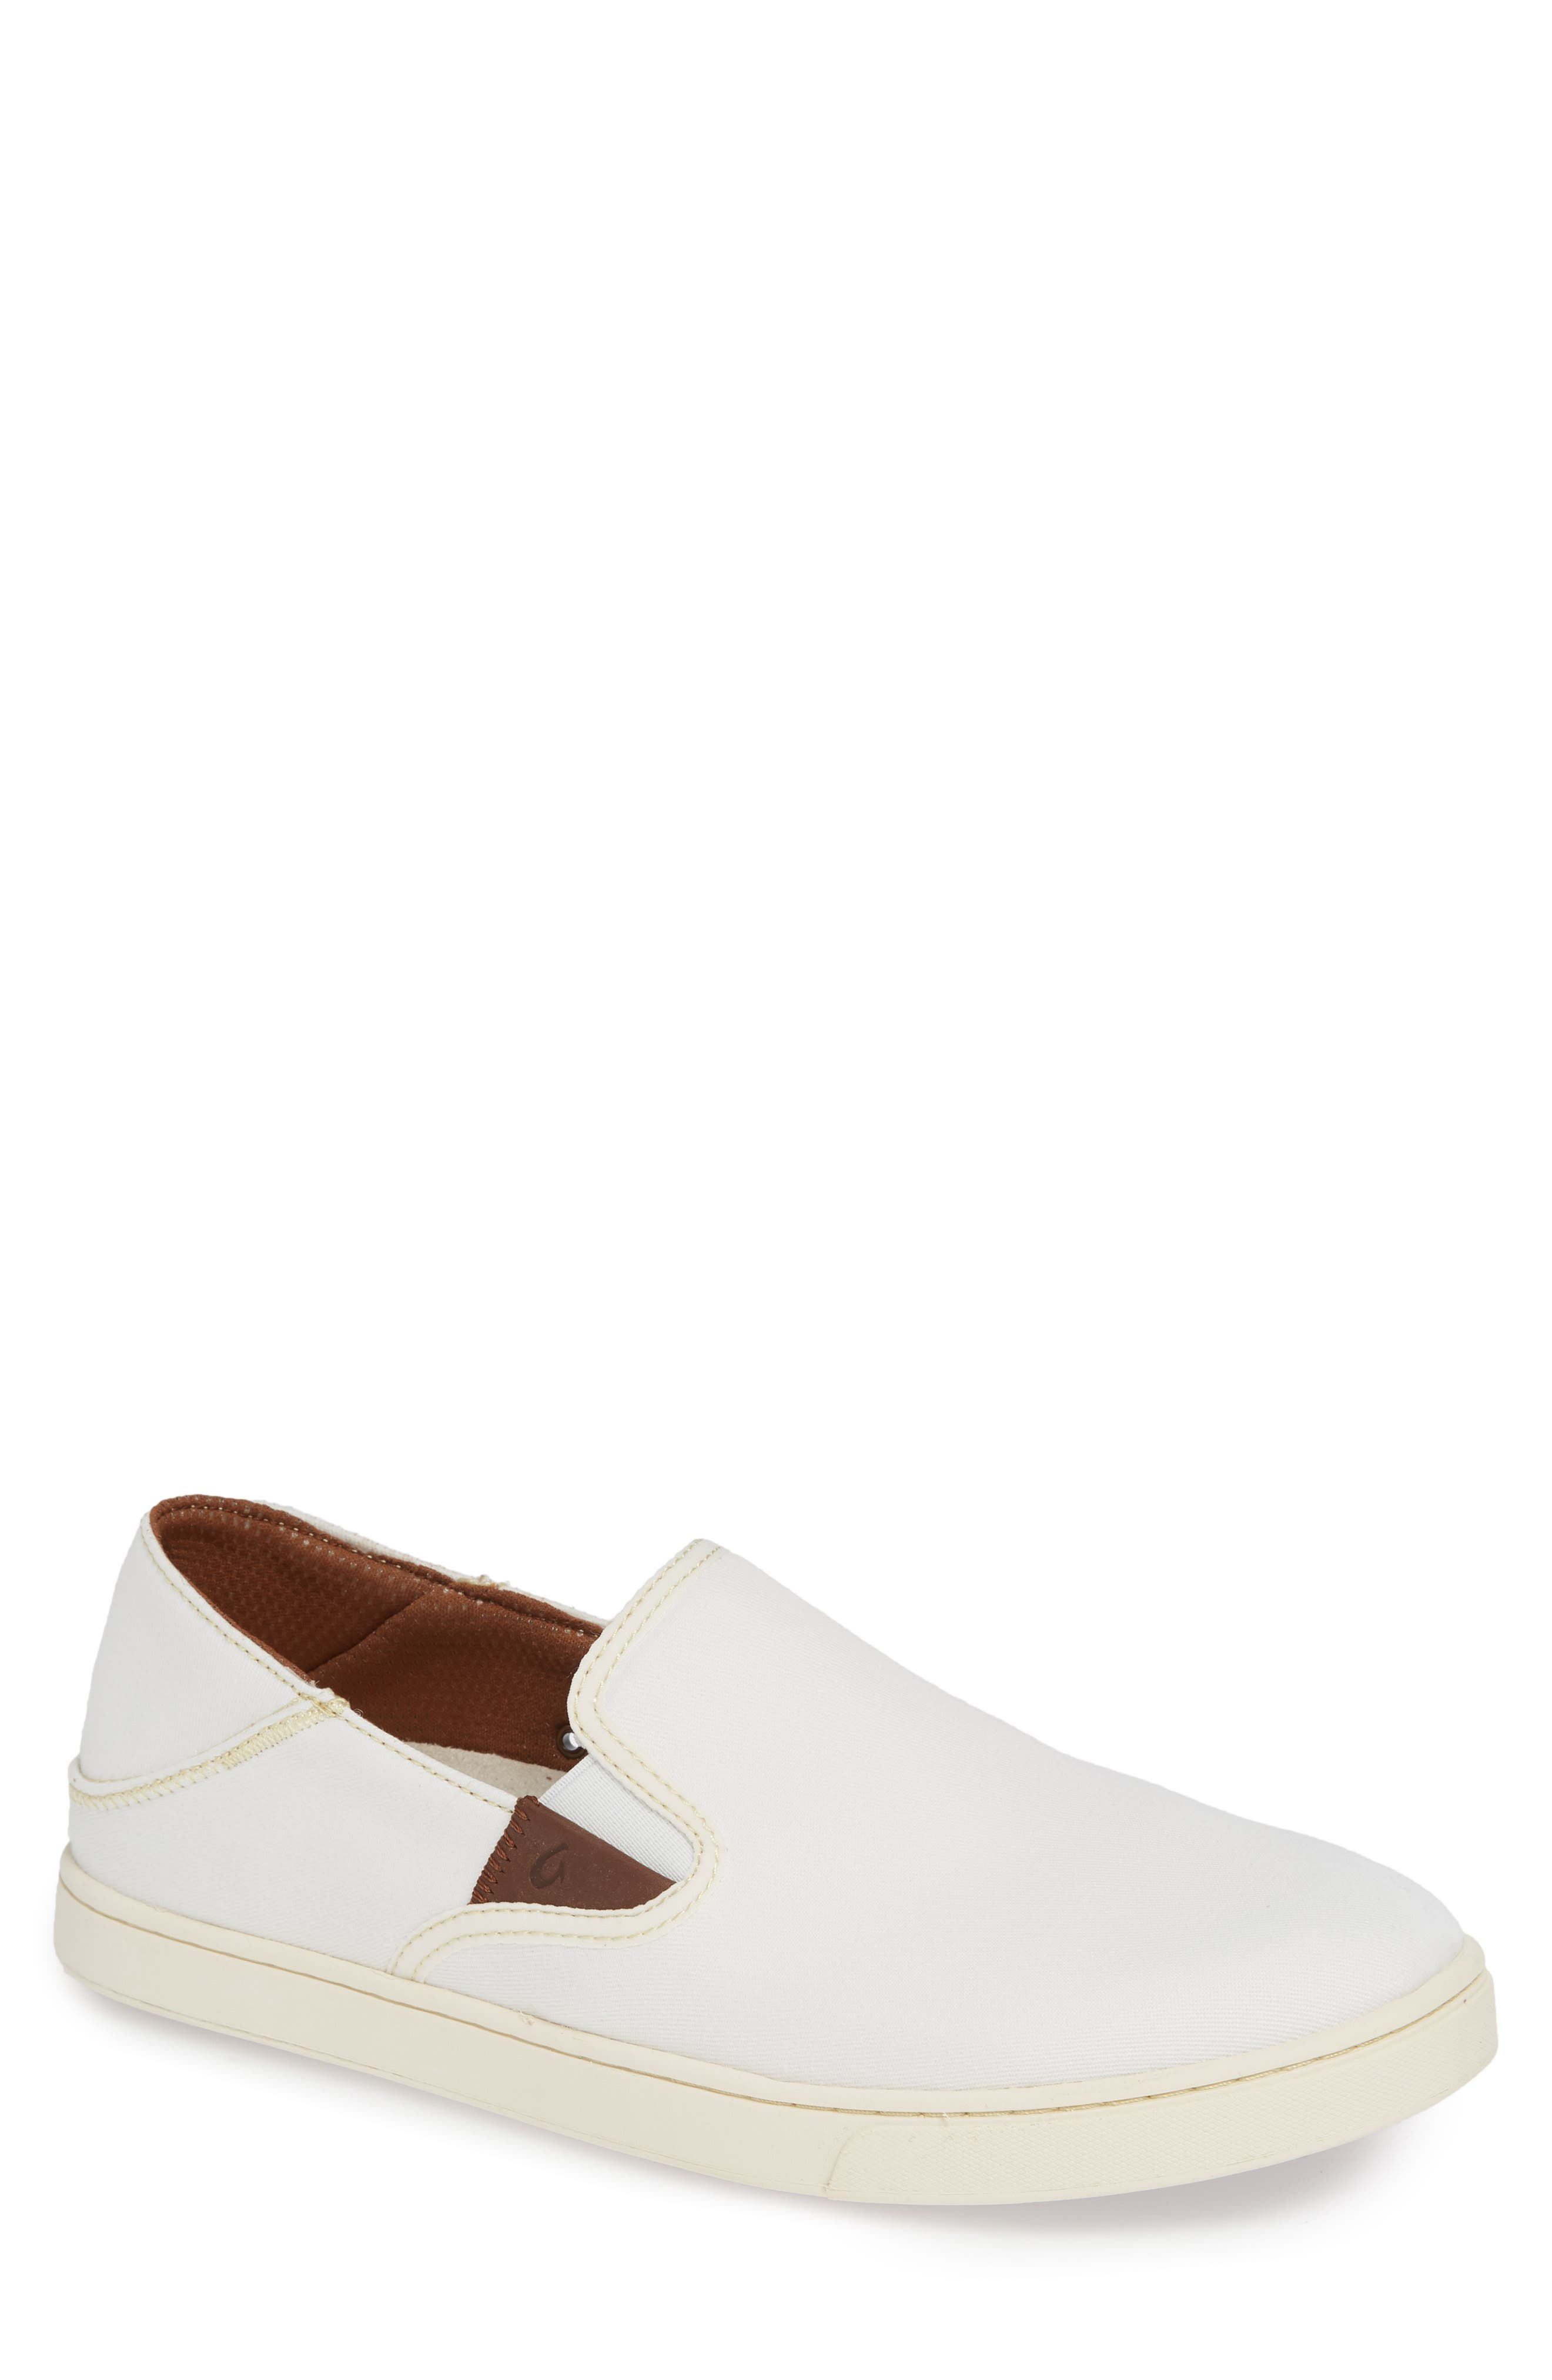 Kahu Collapsible Slip-On Sneaker,                             Main thumbnail 1, color,                             259